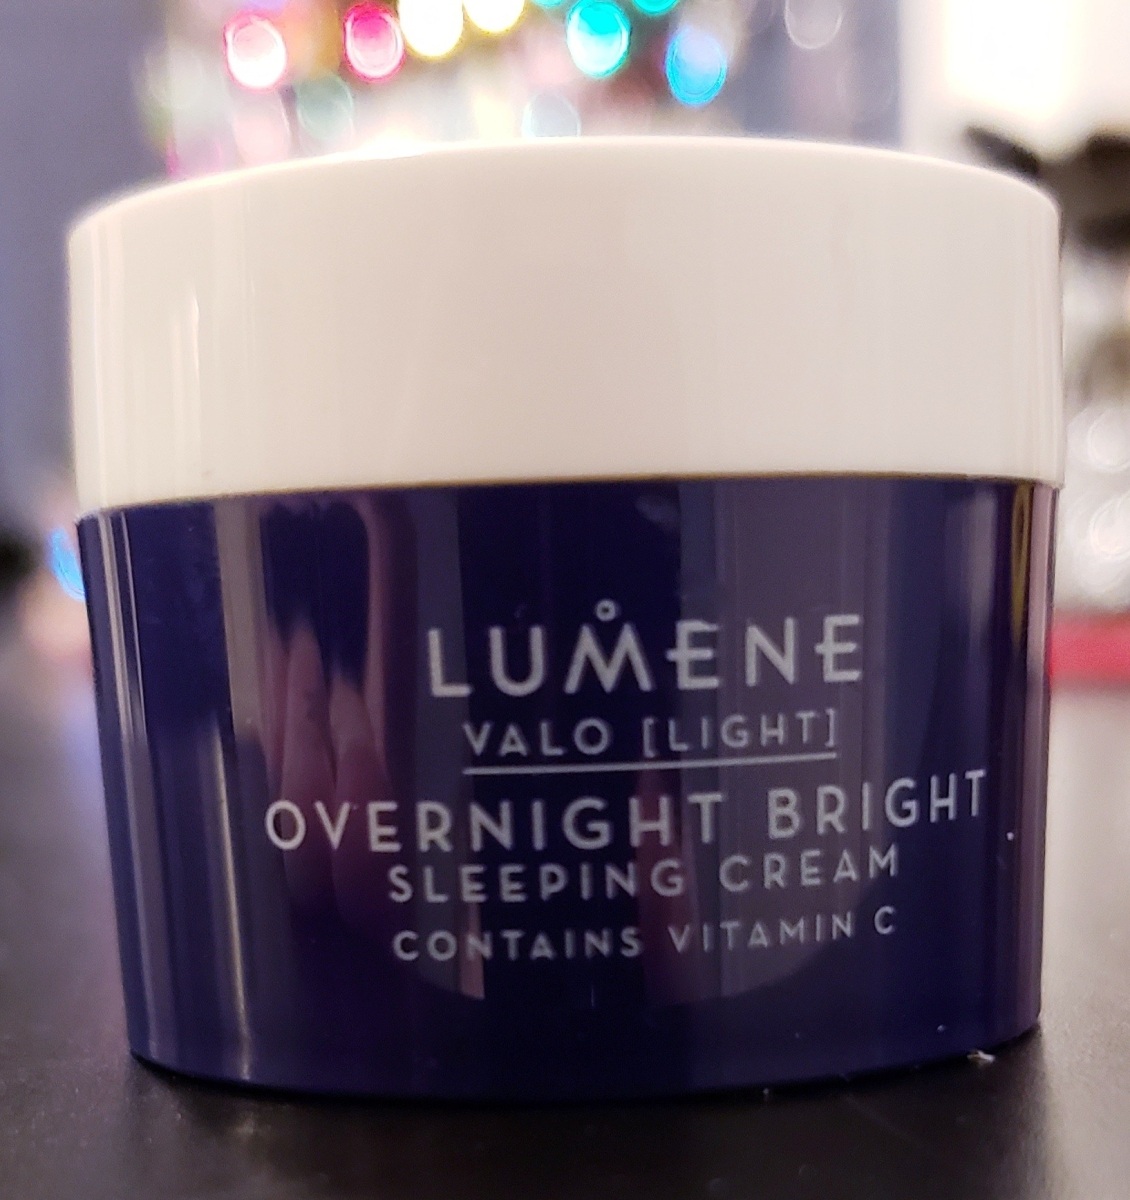 Lumene Valo [Light] Overnight Bright Sleeping Cream Review